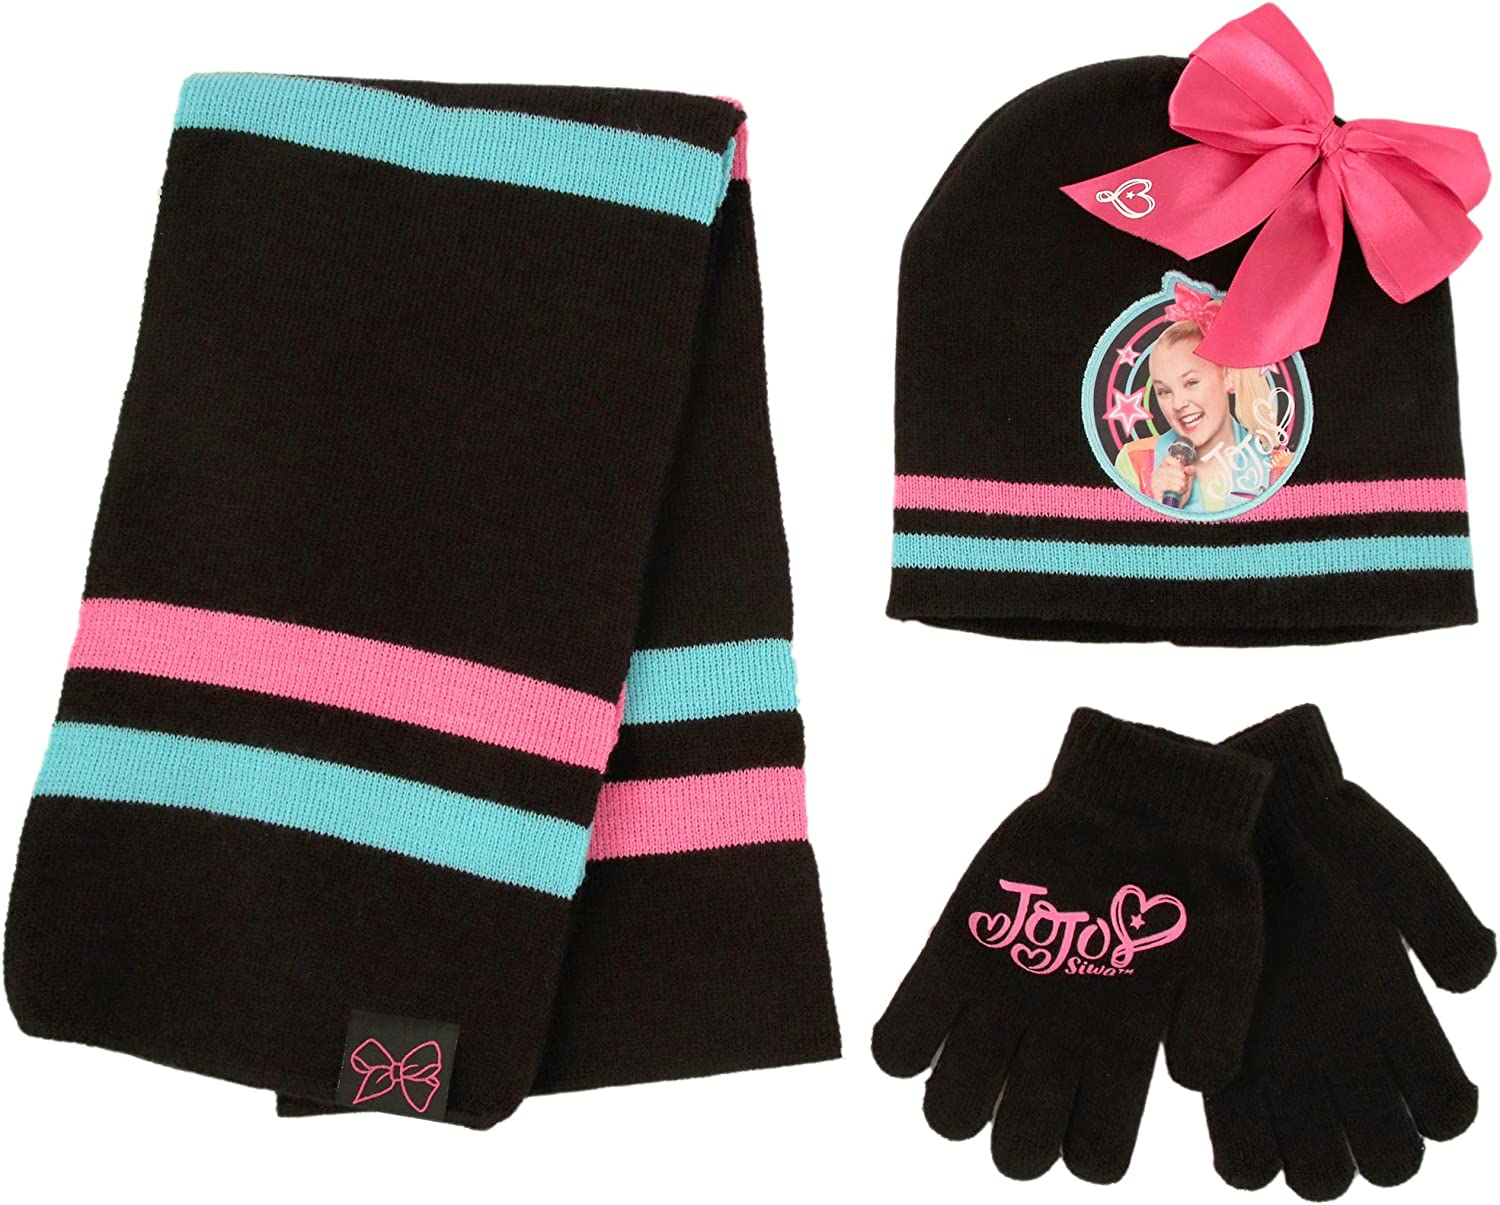 Nickelodeon JoJo Hat, Scarf and Gloves Cold Weather Set, Black, Girls, Ages 4-7: Clothing